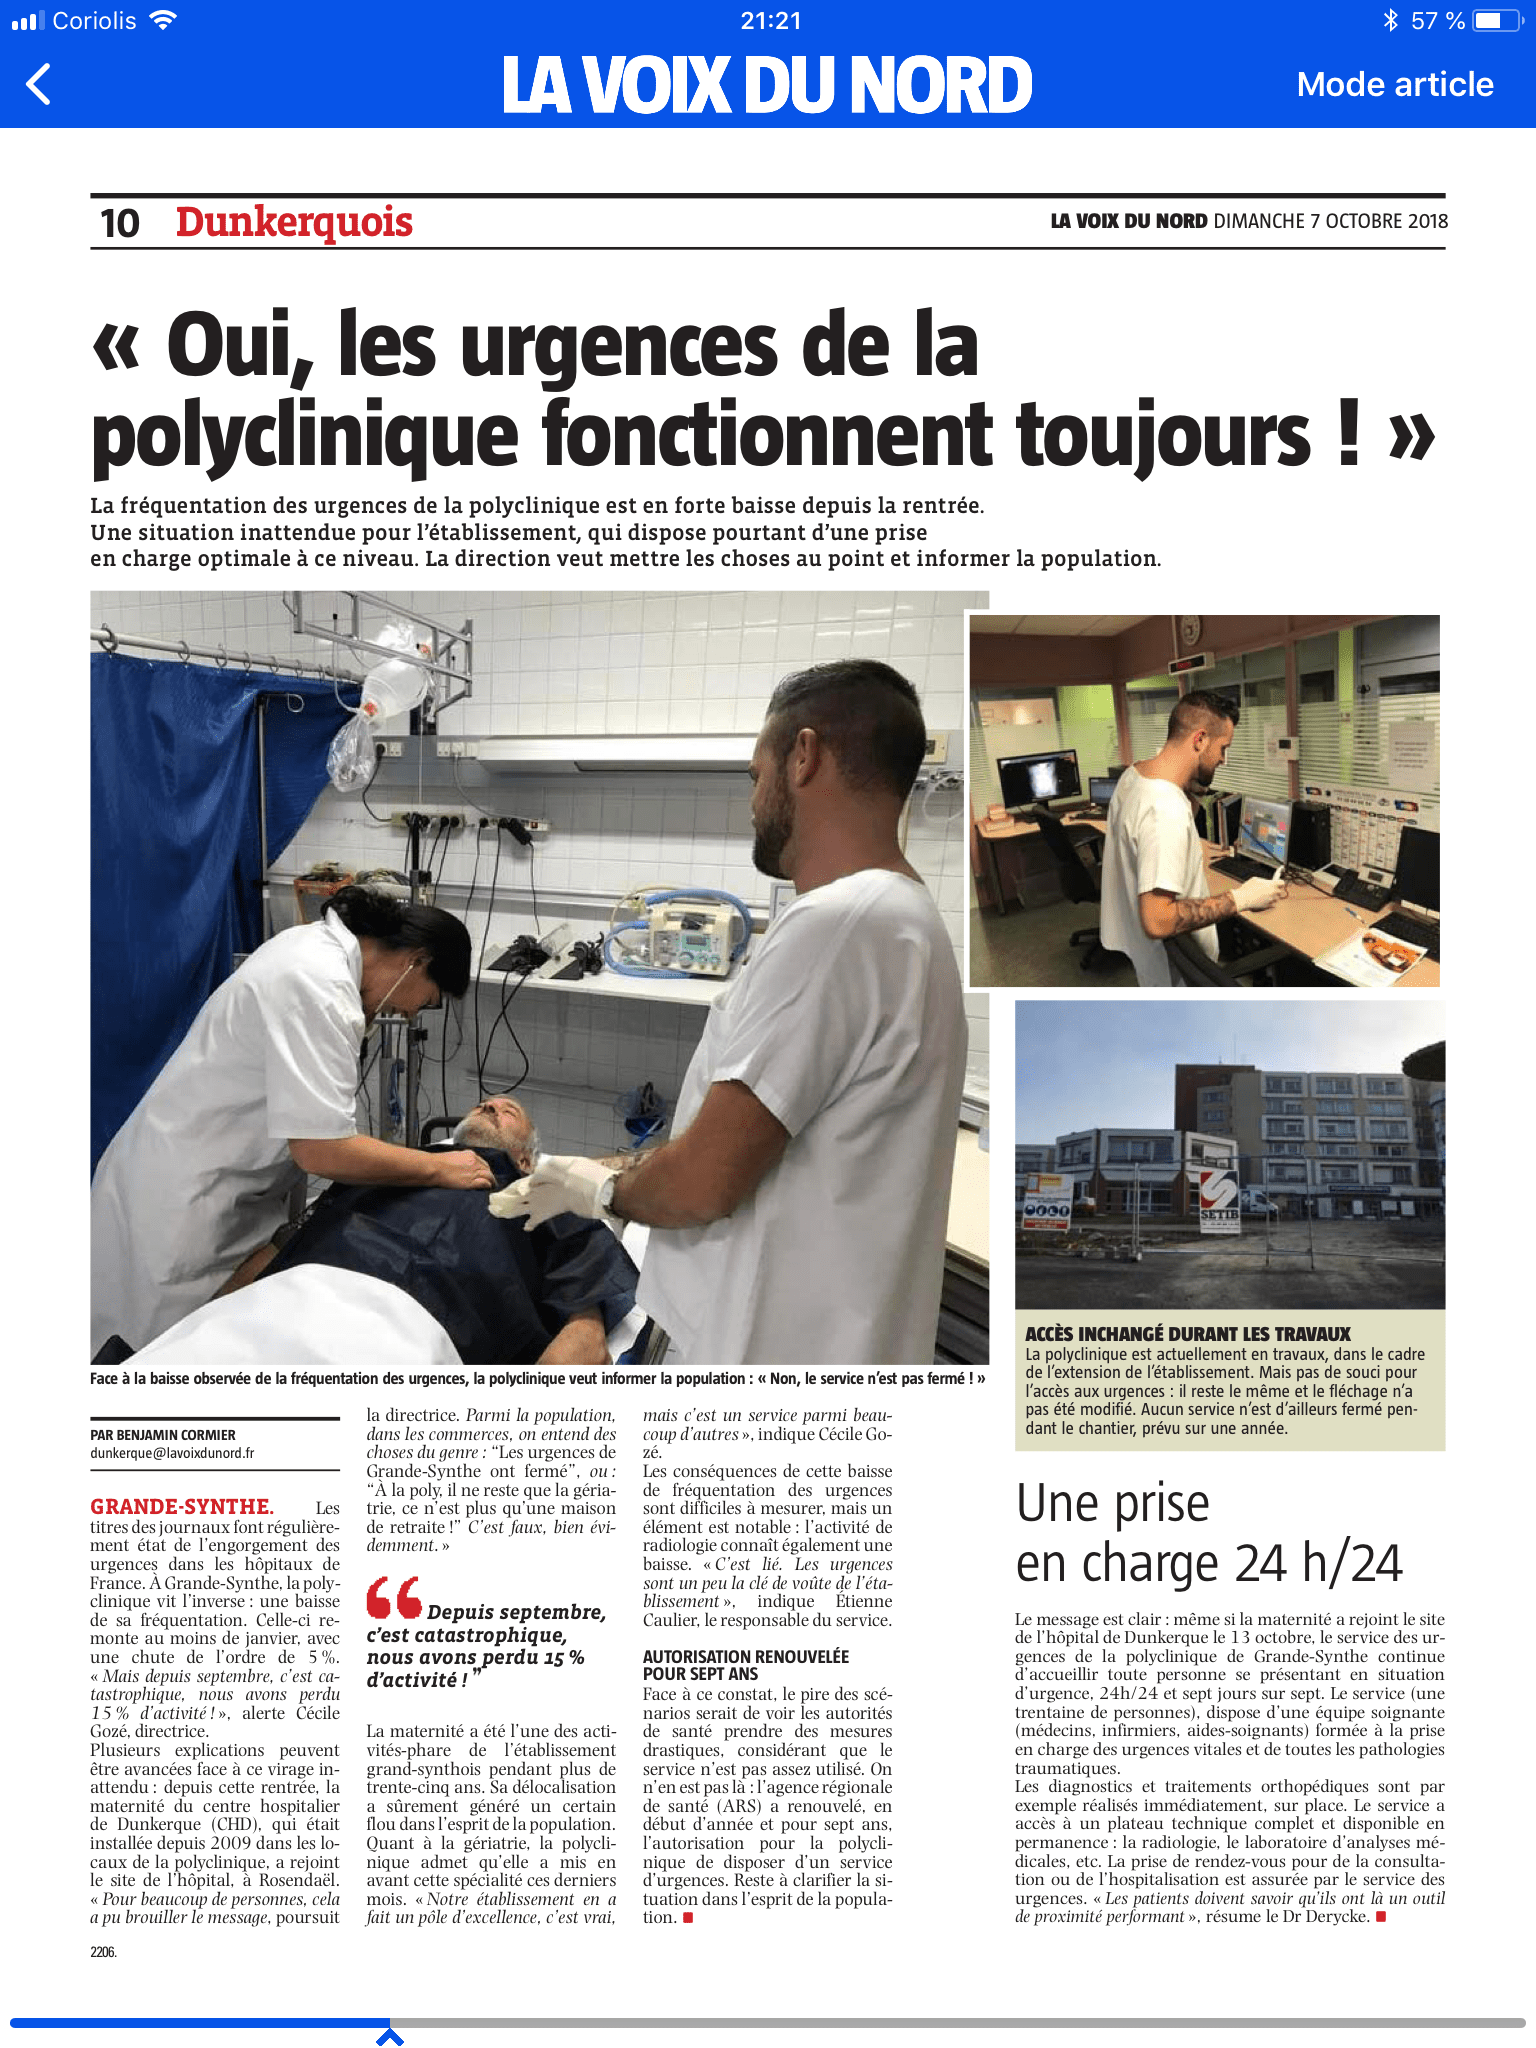 Article VDN Polyclinique de Grande Synthe urgences ouvertes